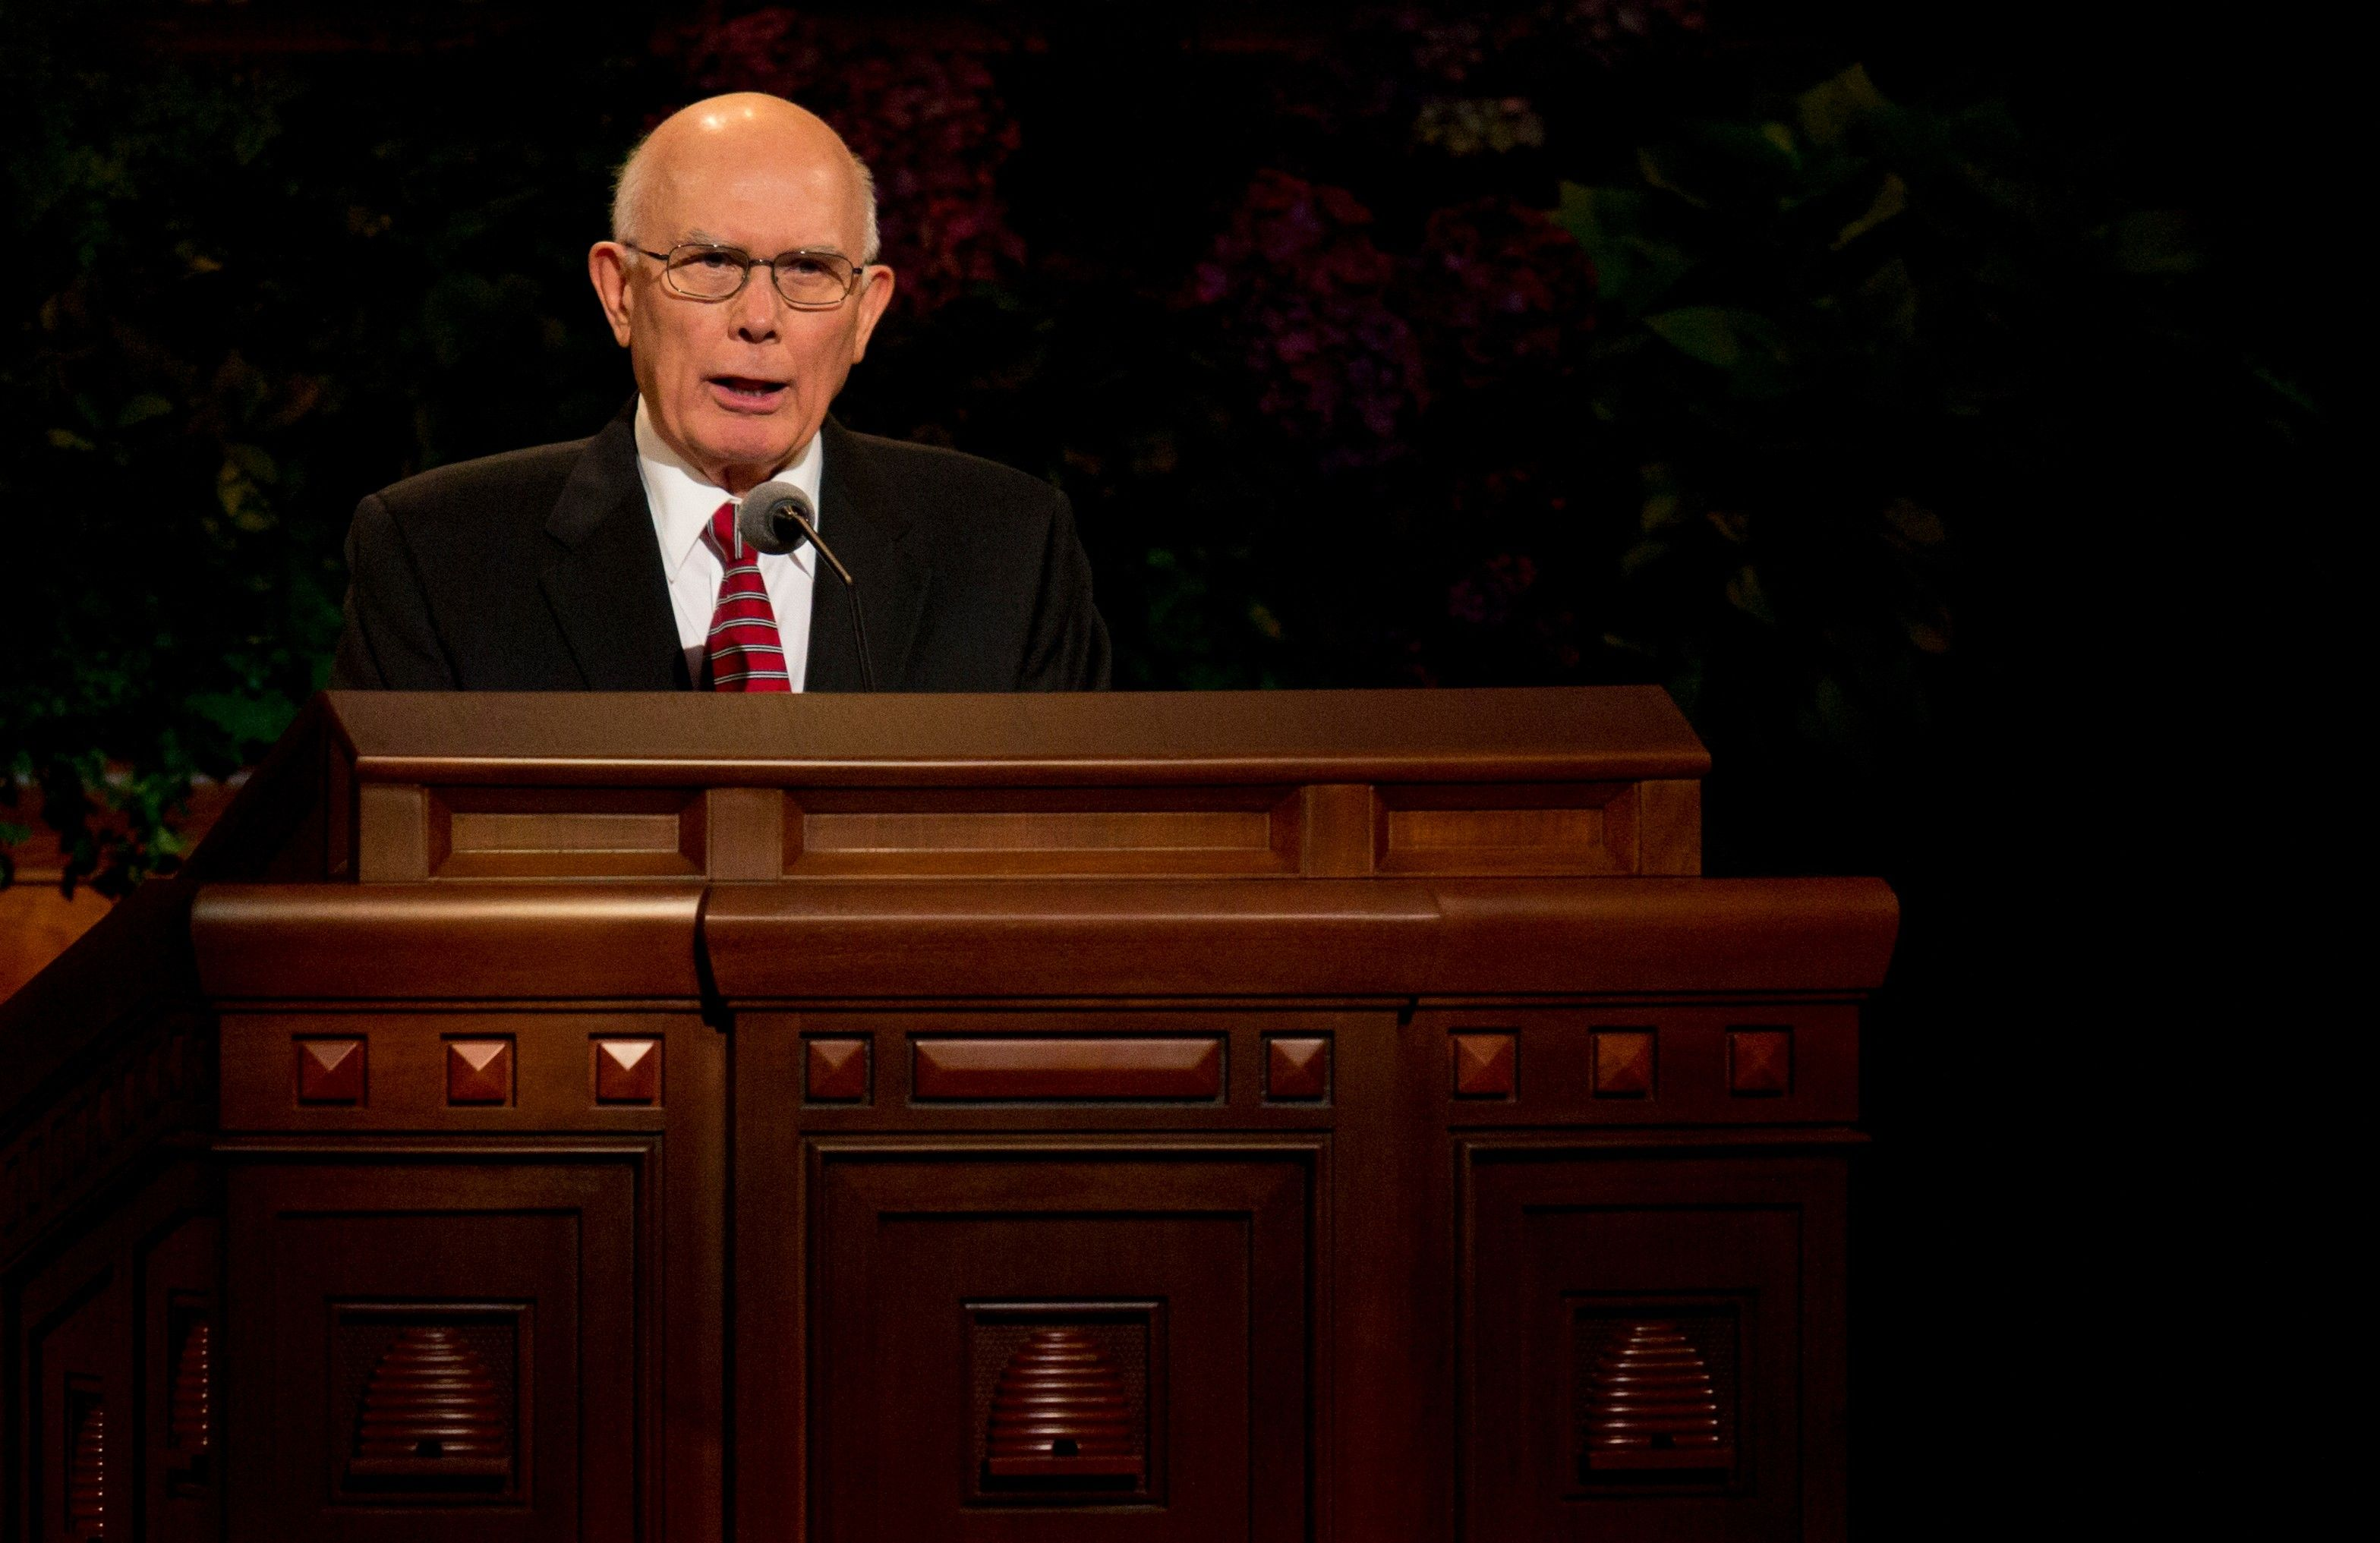 Dallin H. Oaks standing and addressing the congregation at general conference.